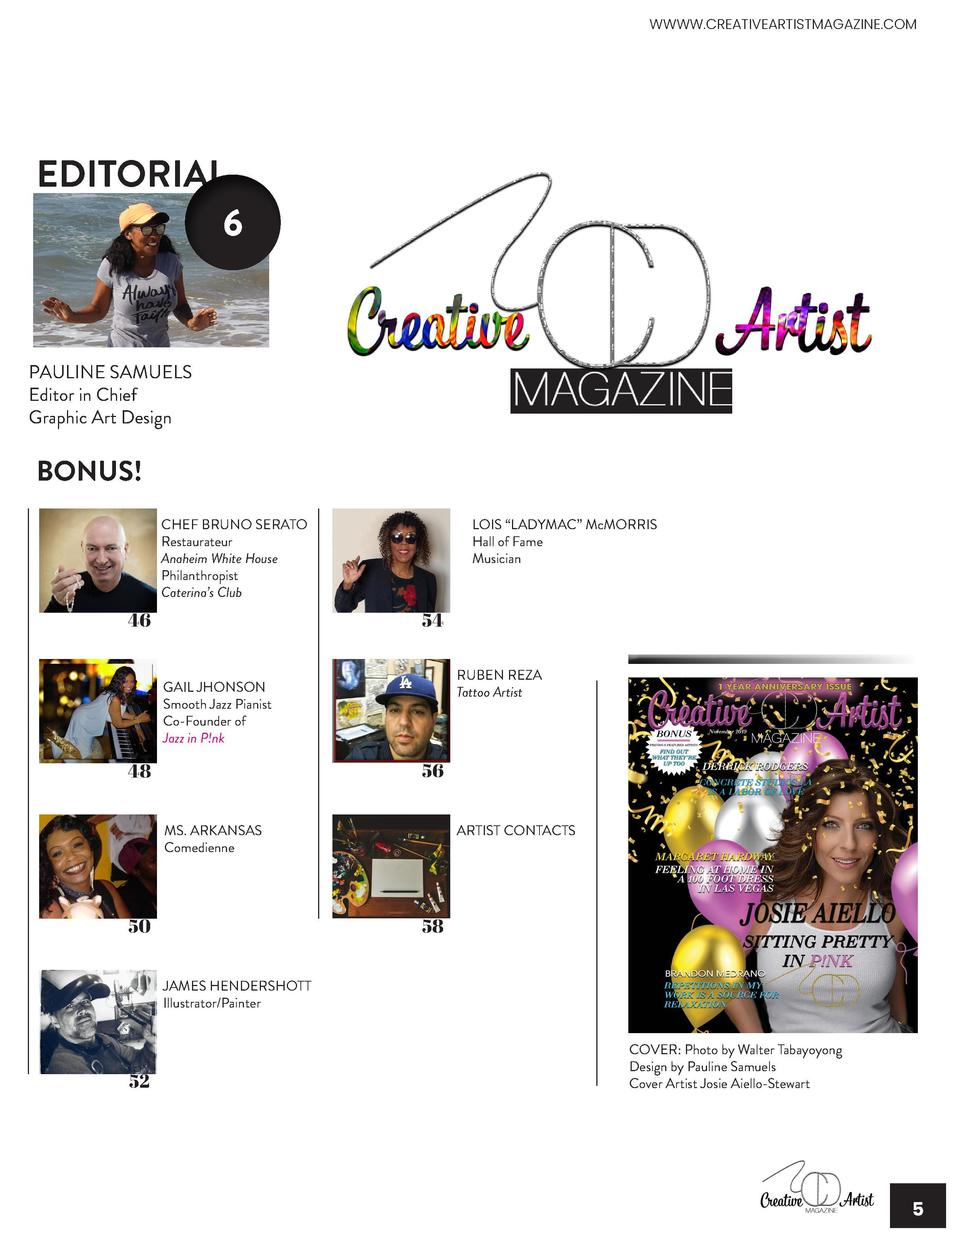 WWWW.CREATIVEARTISTMAGAZINE.COM  CONTENT November 2019 Vol. 1  FEATURES 24  EDITORIAL 6  PAULINE SAMUELS Editor in Chief G...